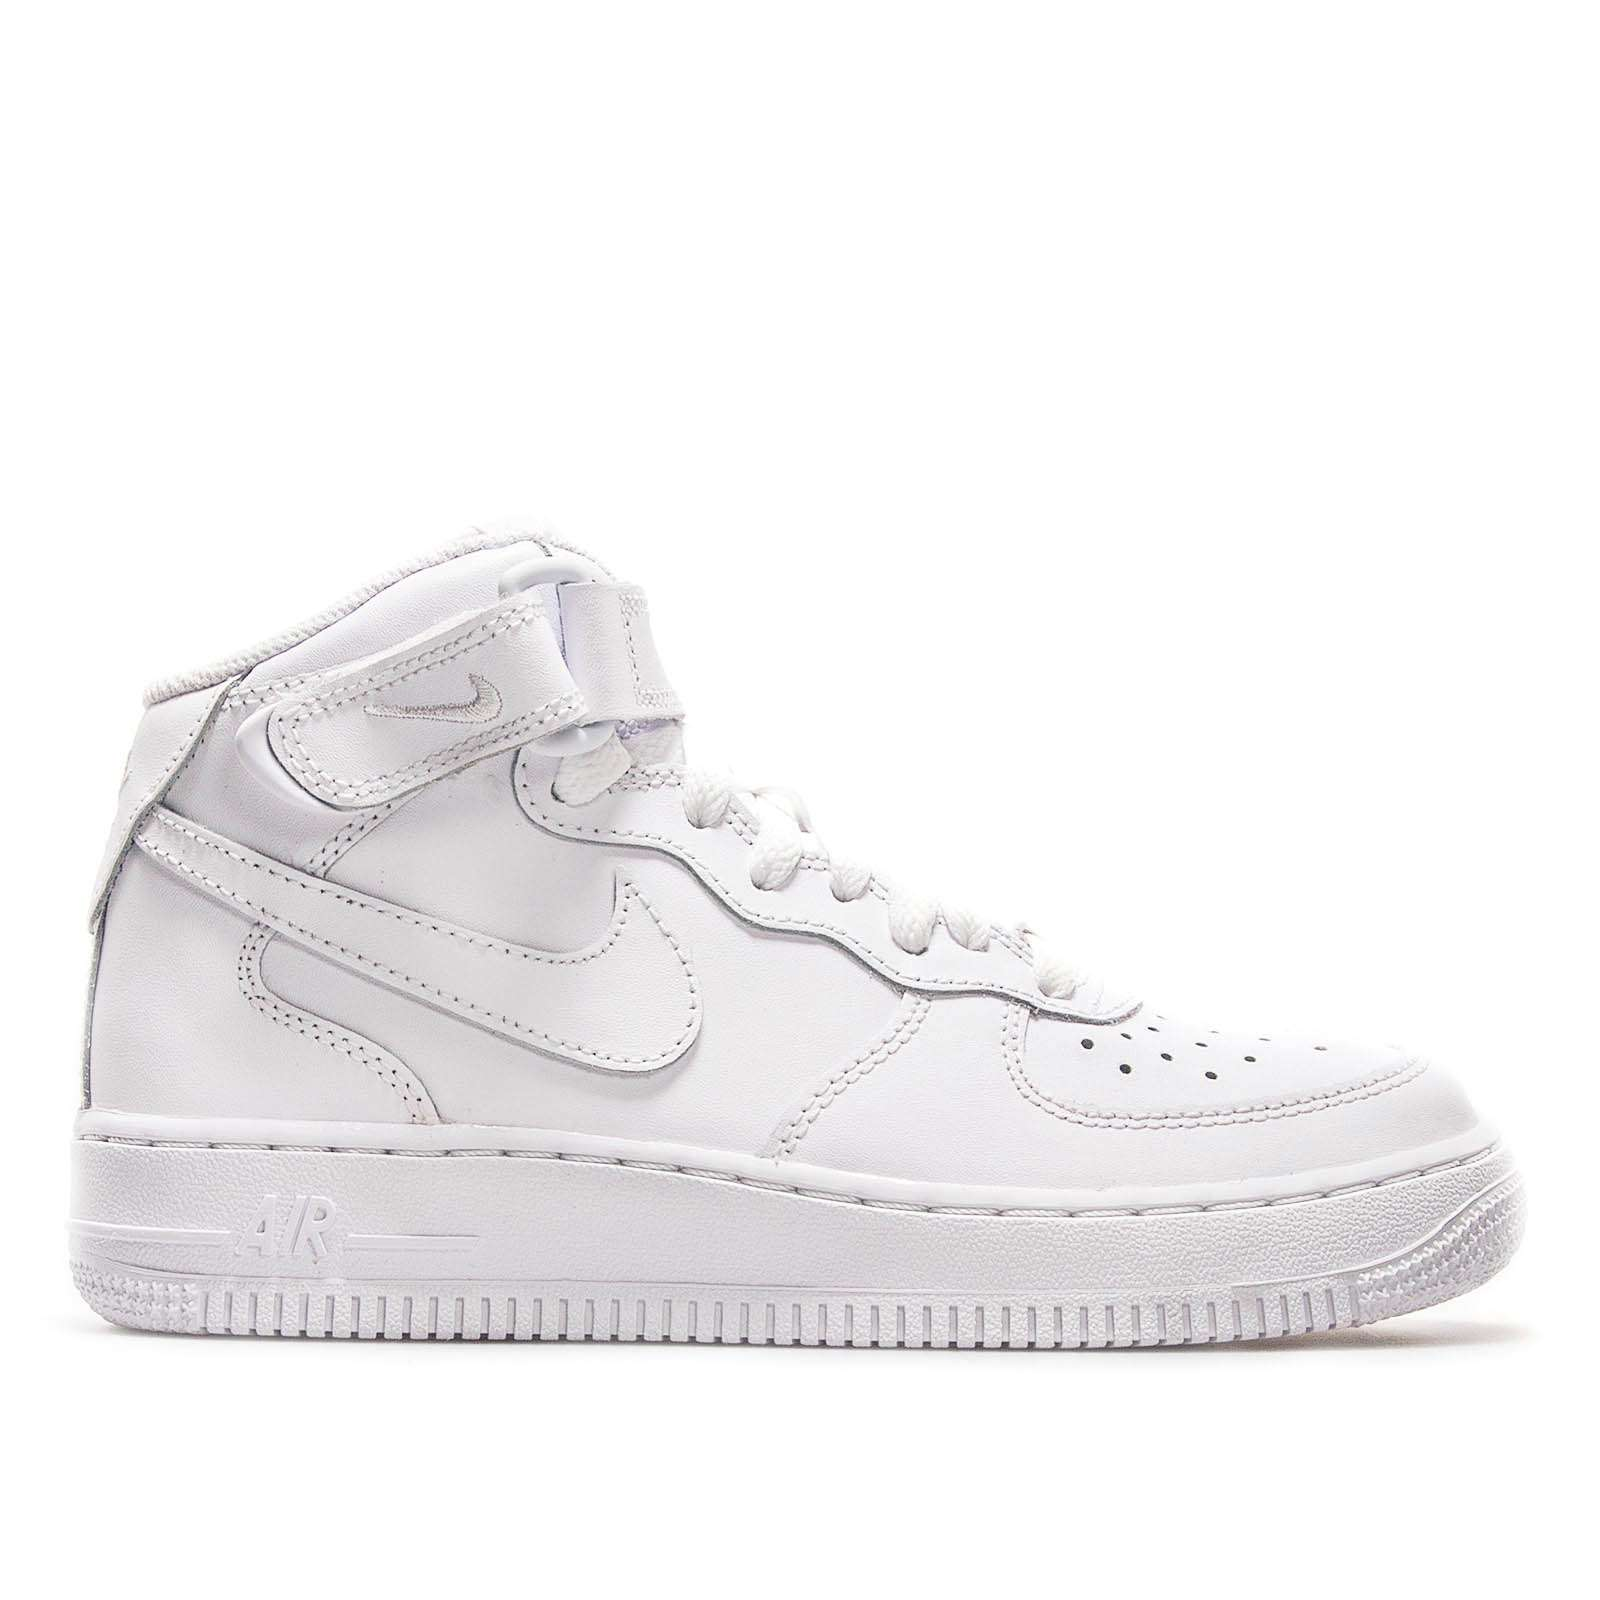 Nike Air Force 1 GS Mid 06 Wht Wht